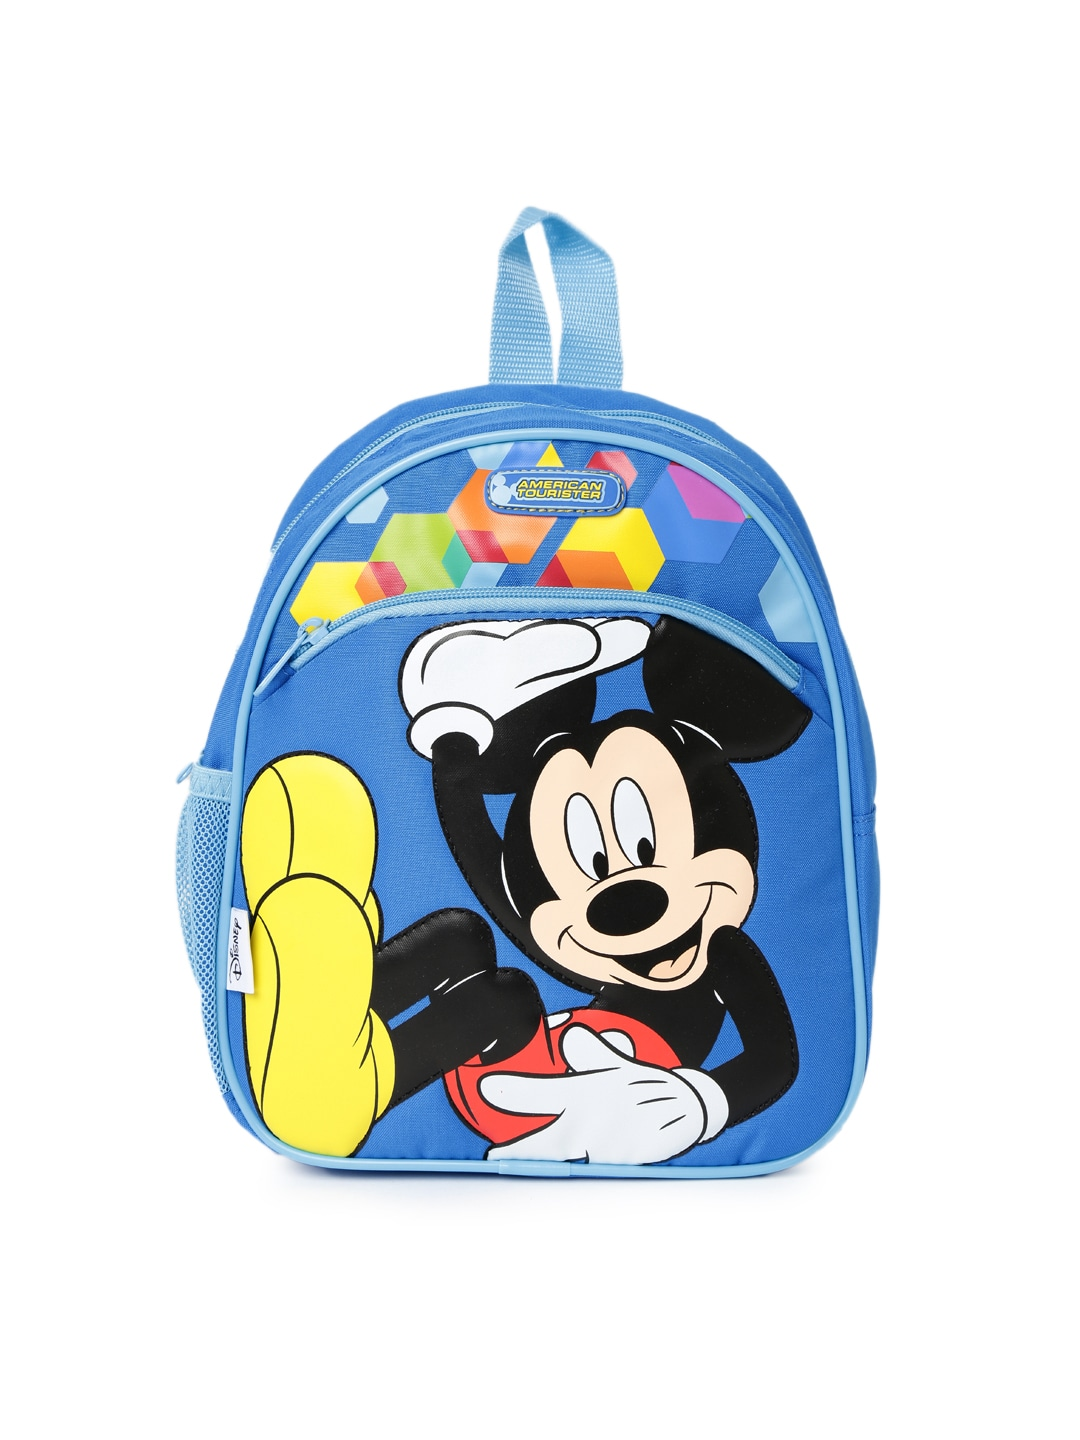 76ab54ca020 American tourister 21s-0-01-001 Girls Blue Disney Print Backpack- Price in  India